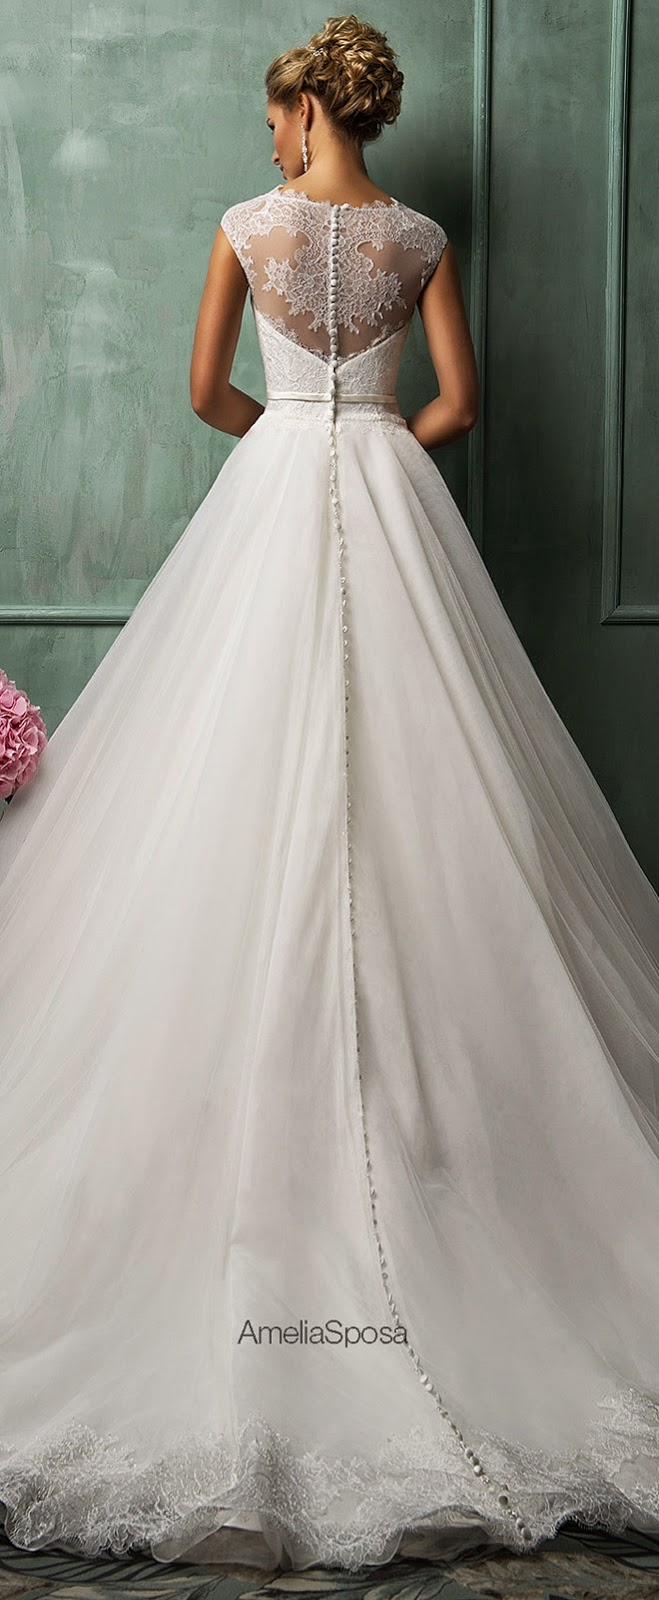 Best Wedding Dresses of 2014 - Amelia Sposa